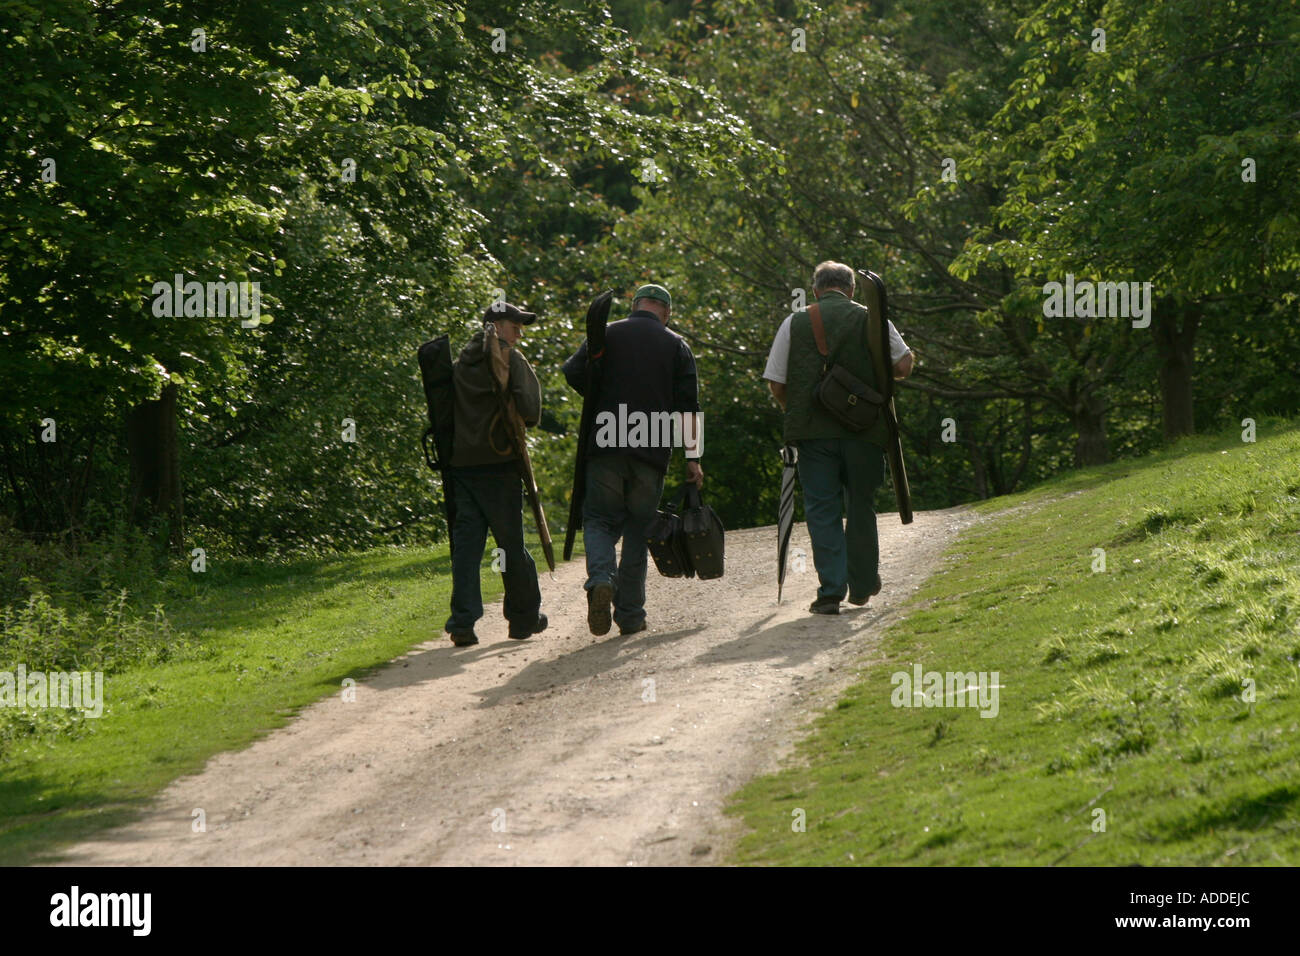 walking back after shoot. This clay pigeon shoot was organised by the Hambleden Estate to thank beaters for work last season. - Stock Image